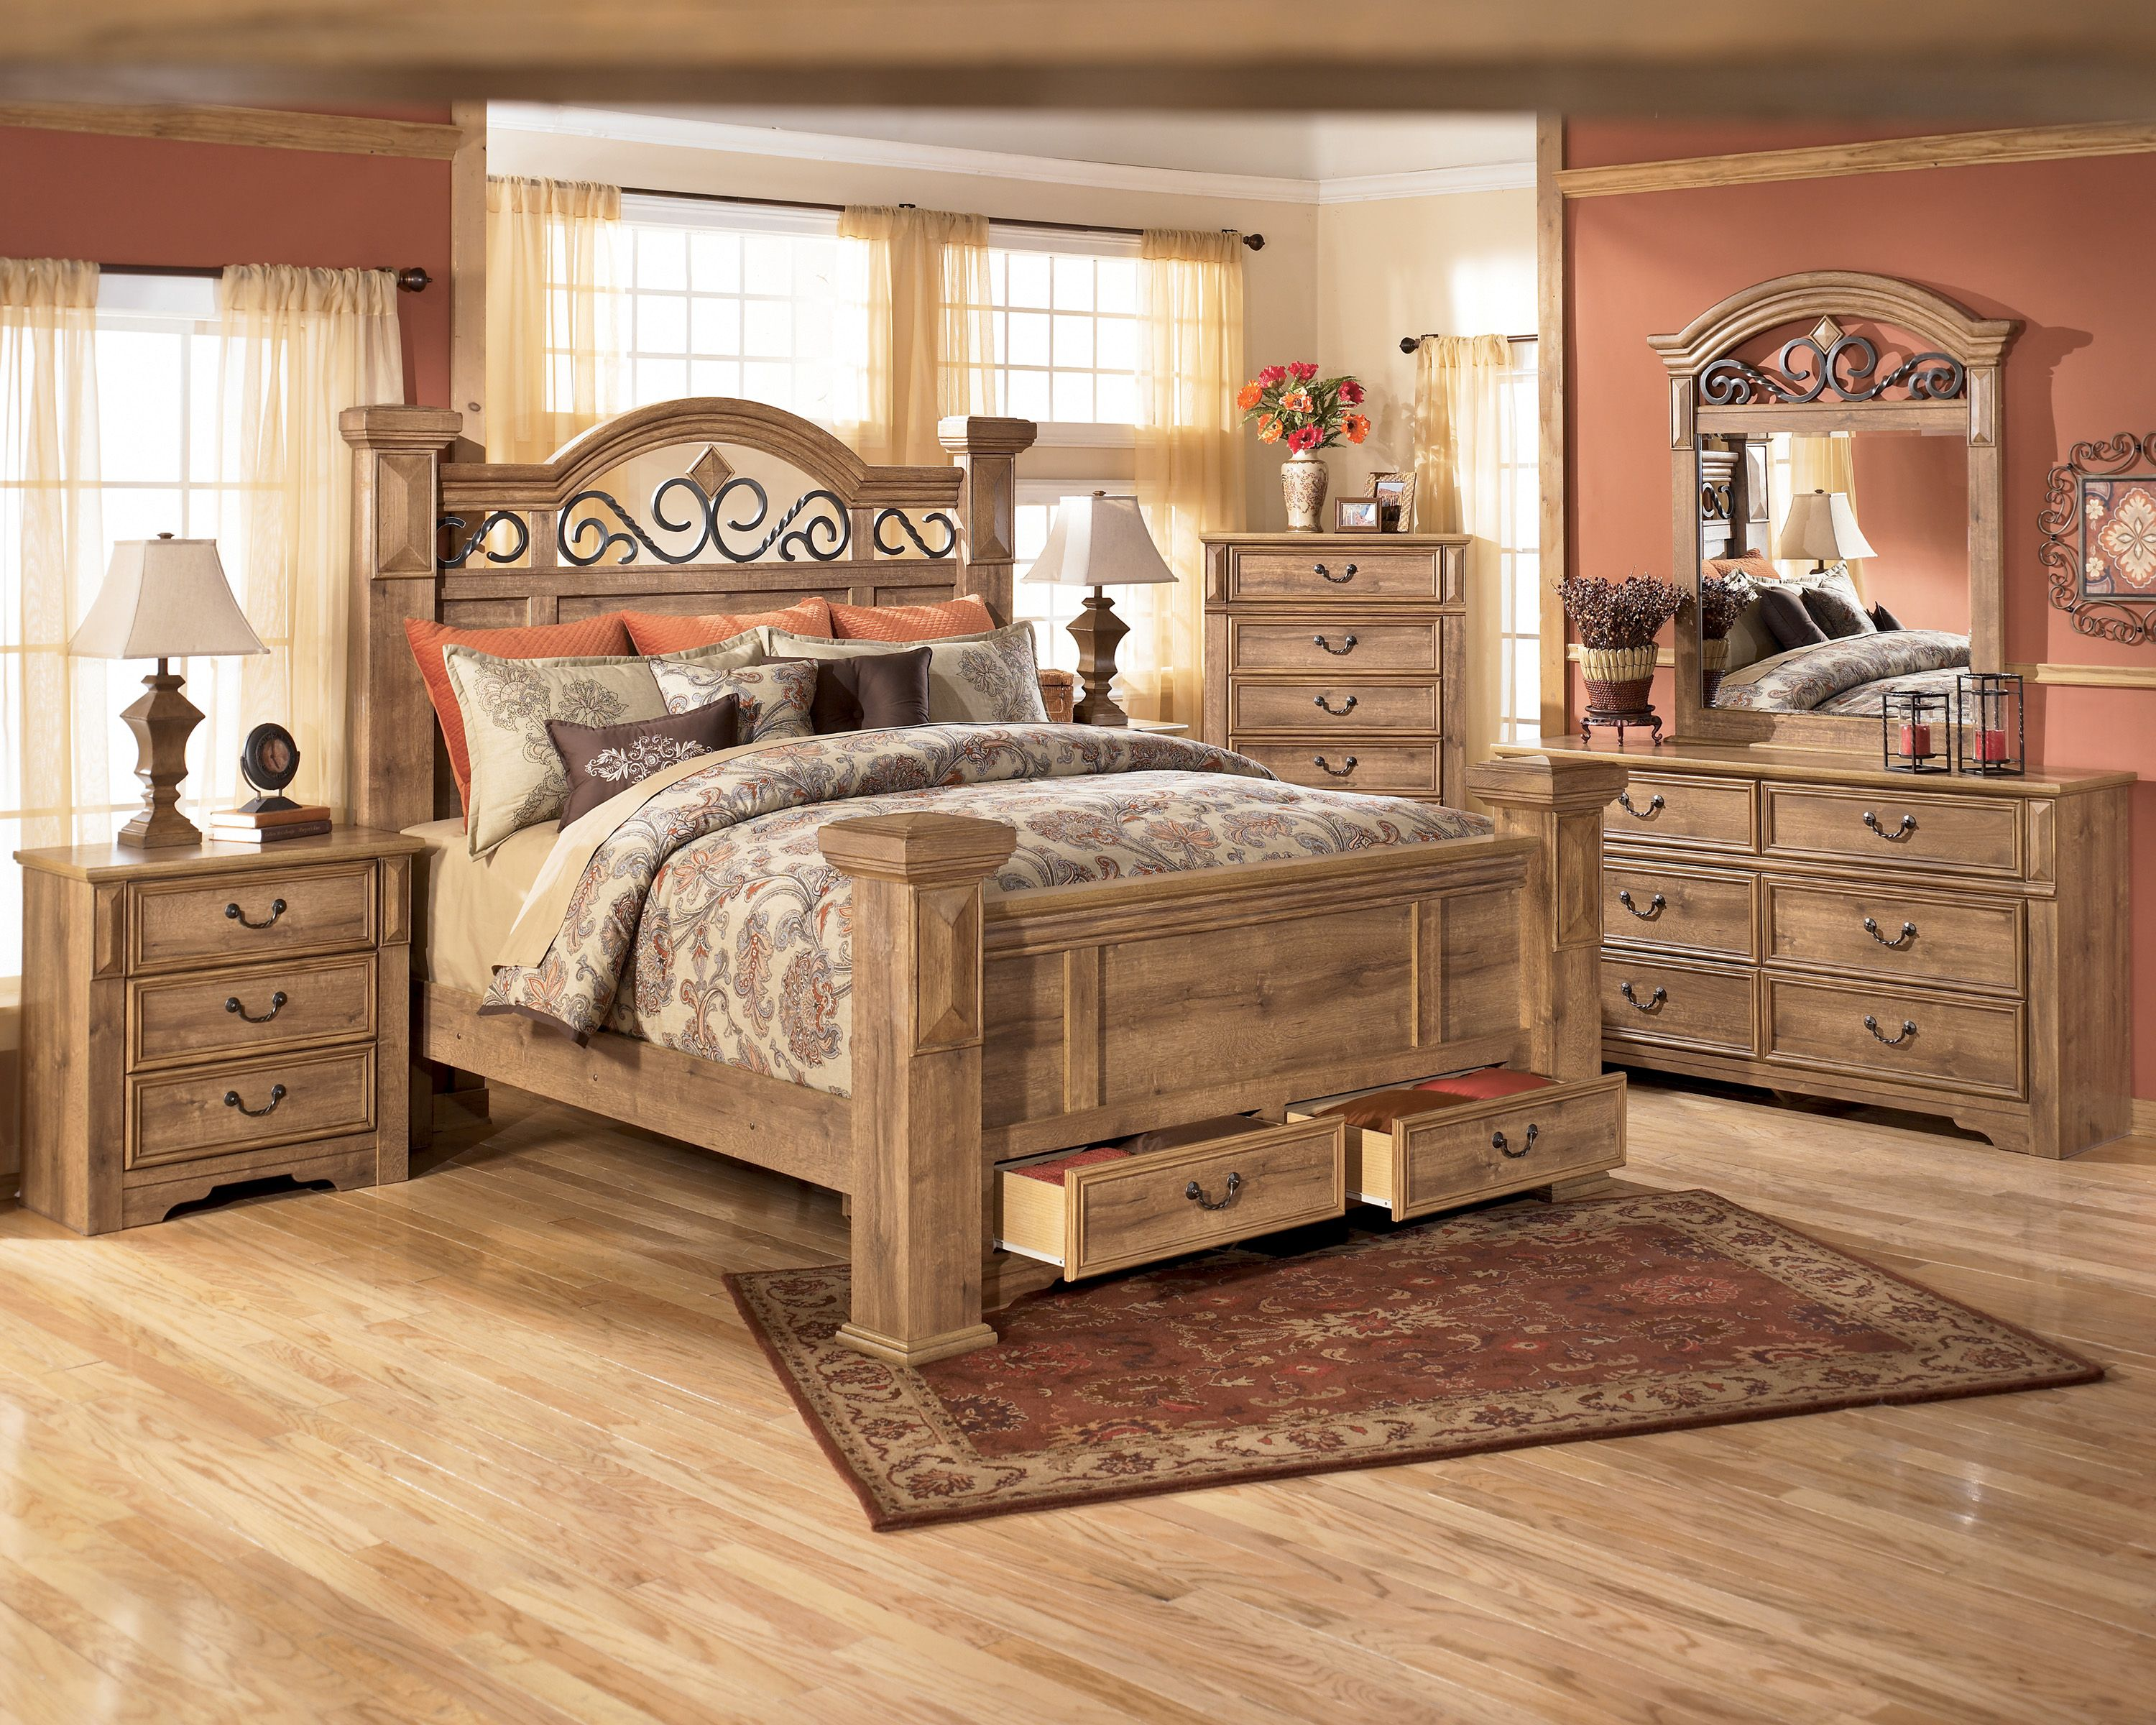 awesome Awesome Full Size Bed Set 89 On Home Decorating Ideas with ...